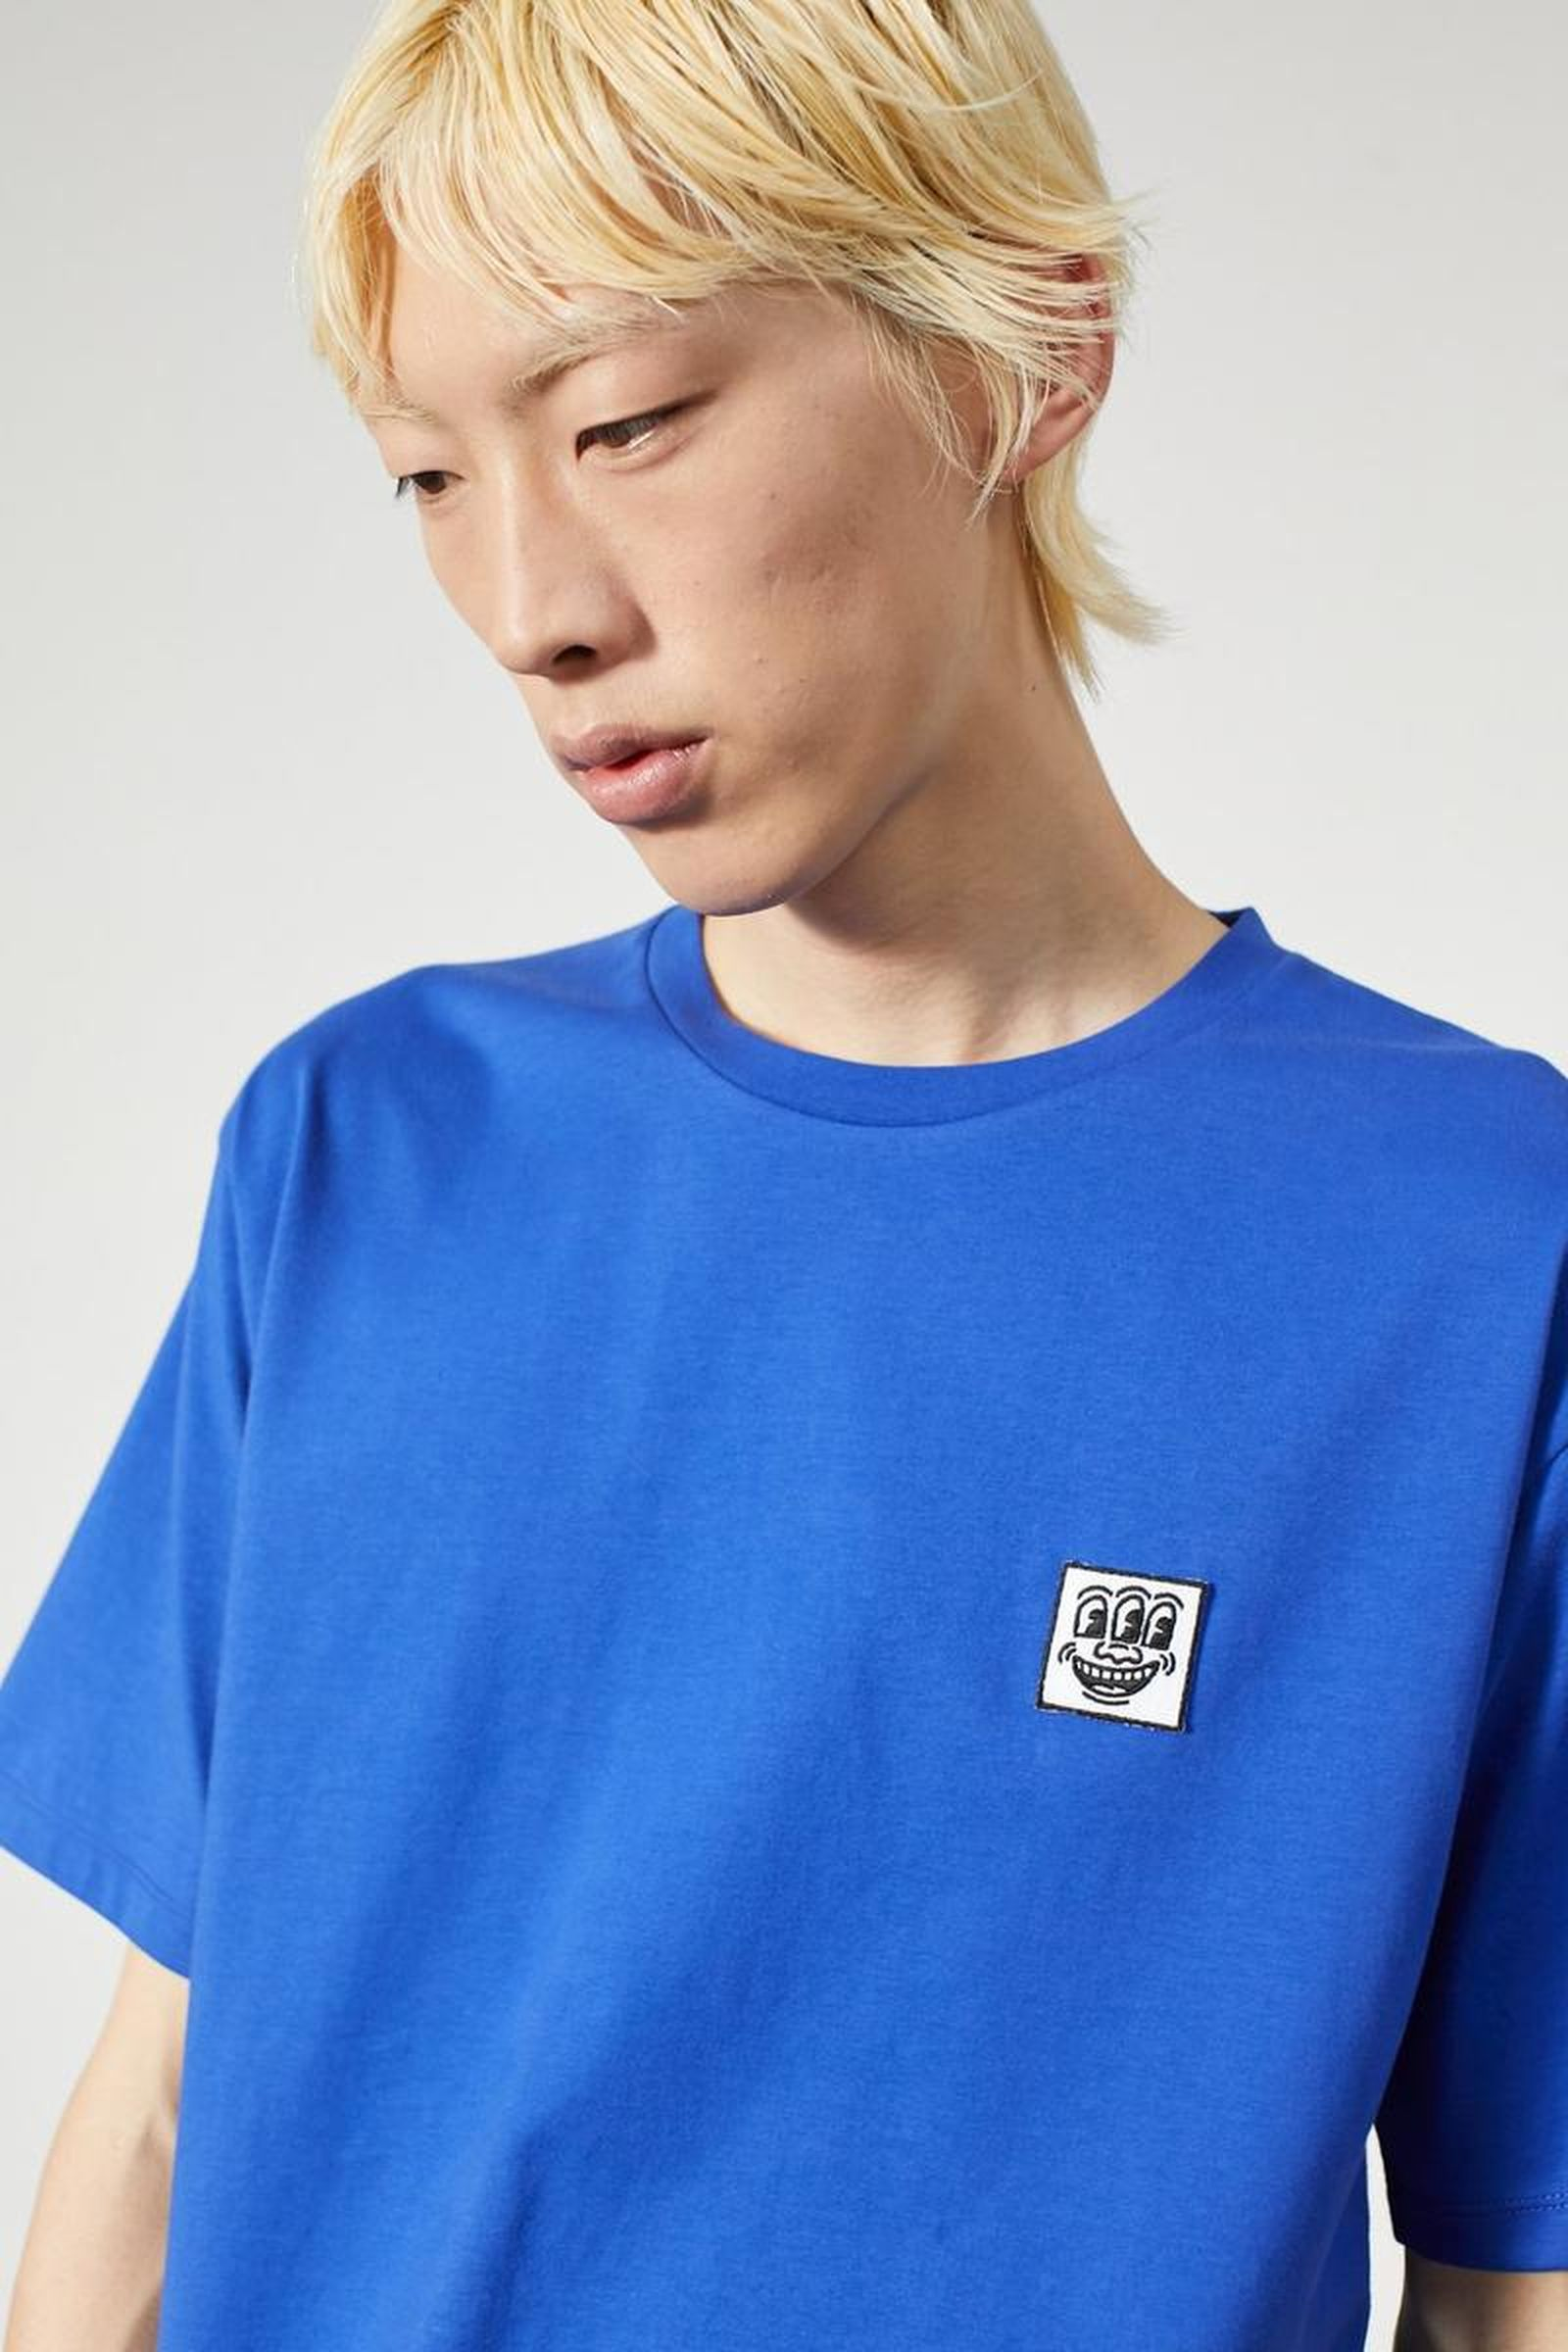 4etudes-keith-haring-ss20-collection